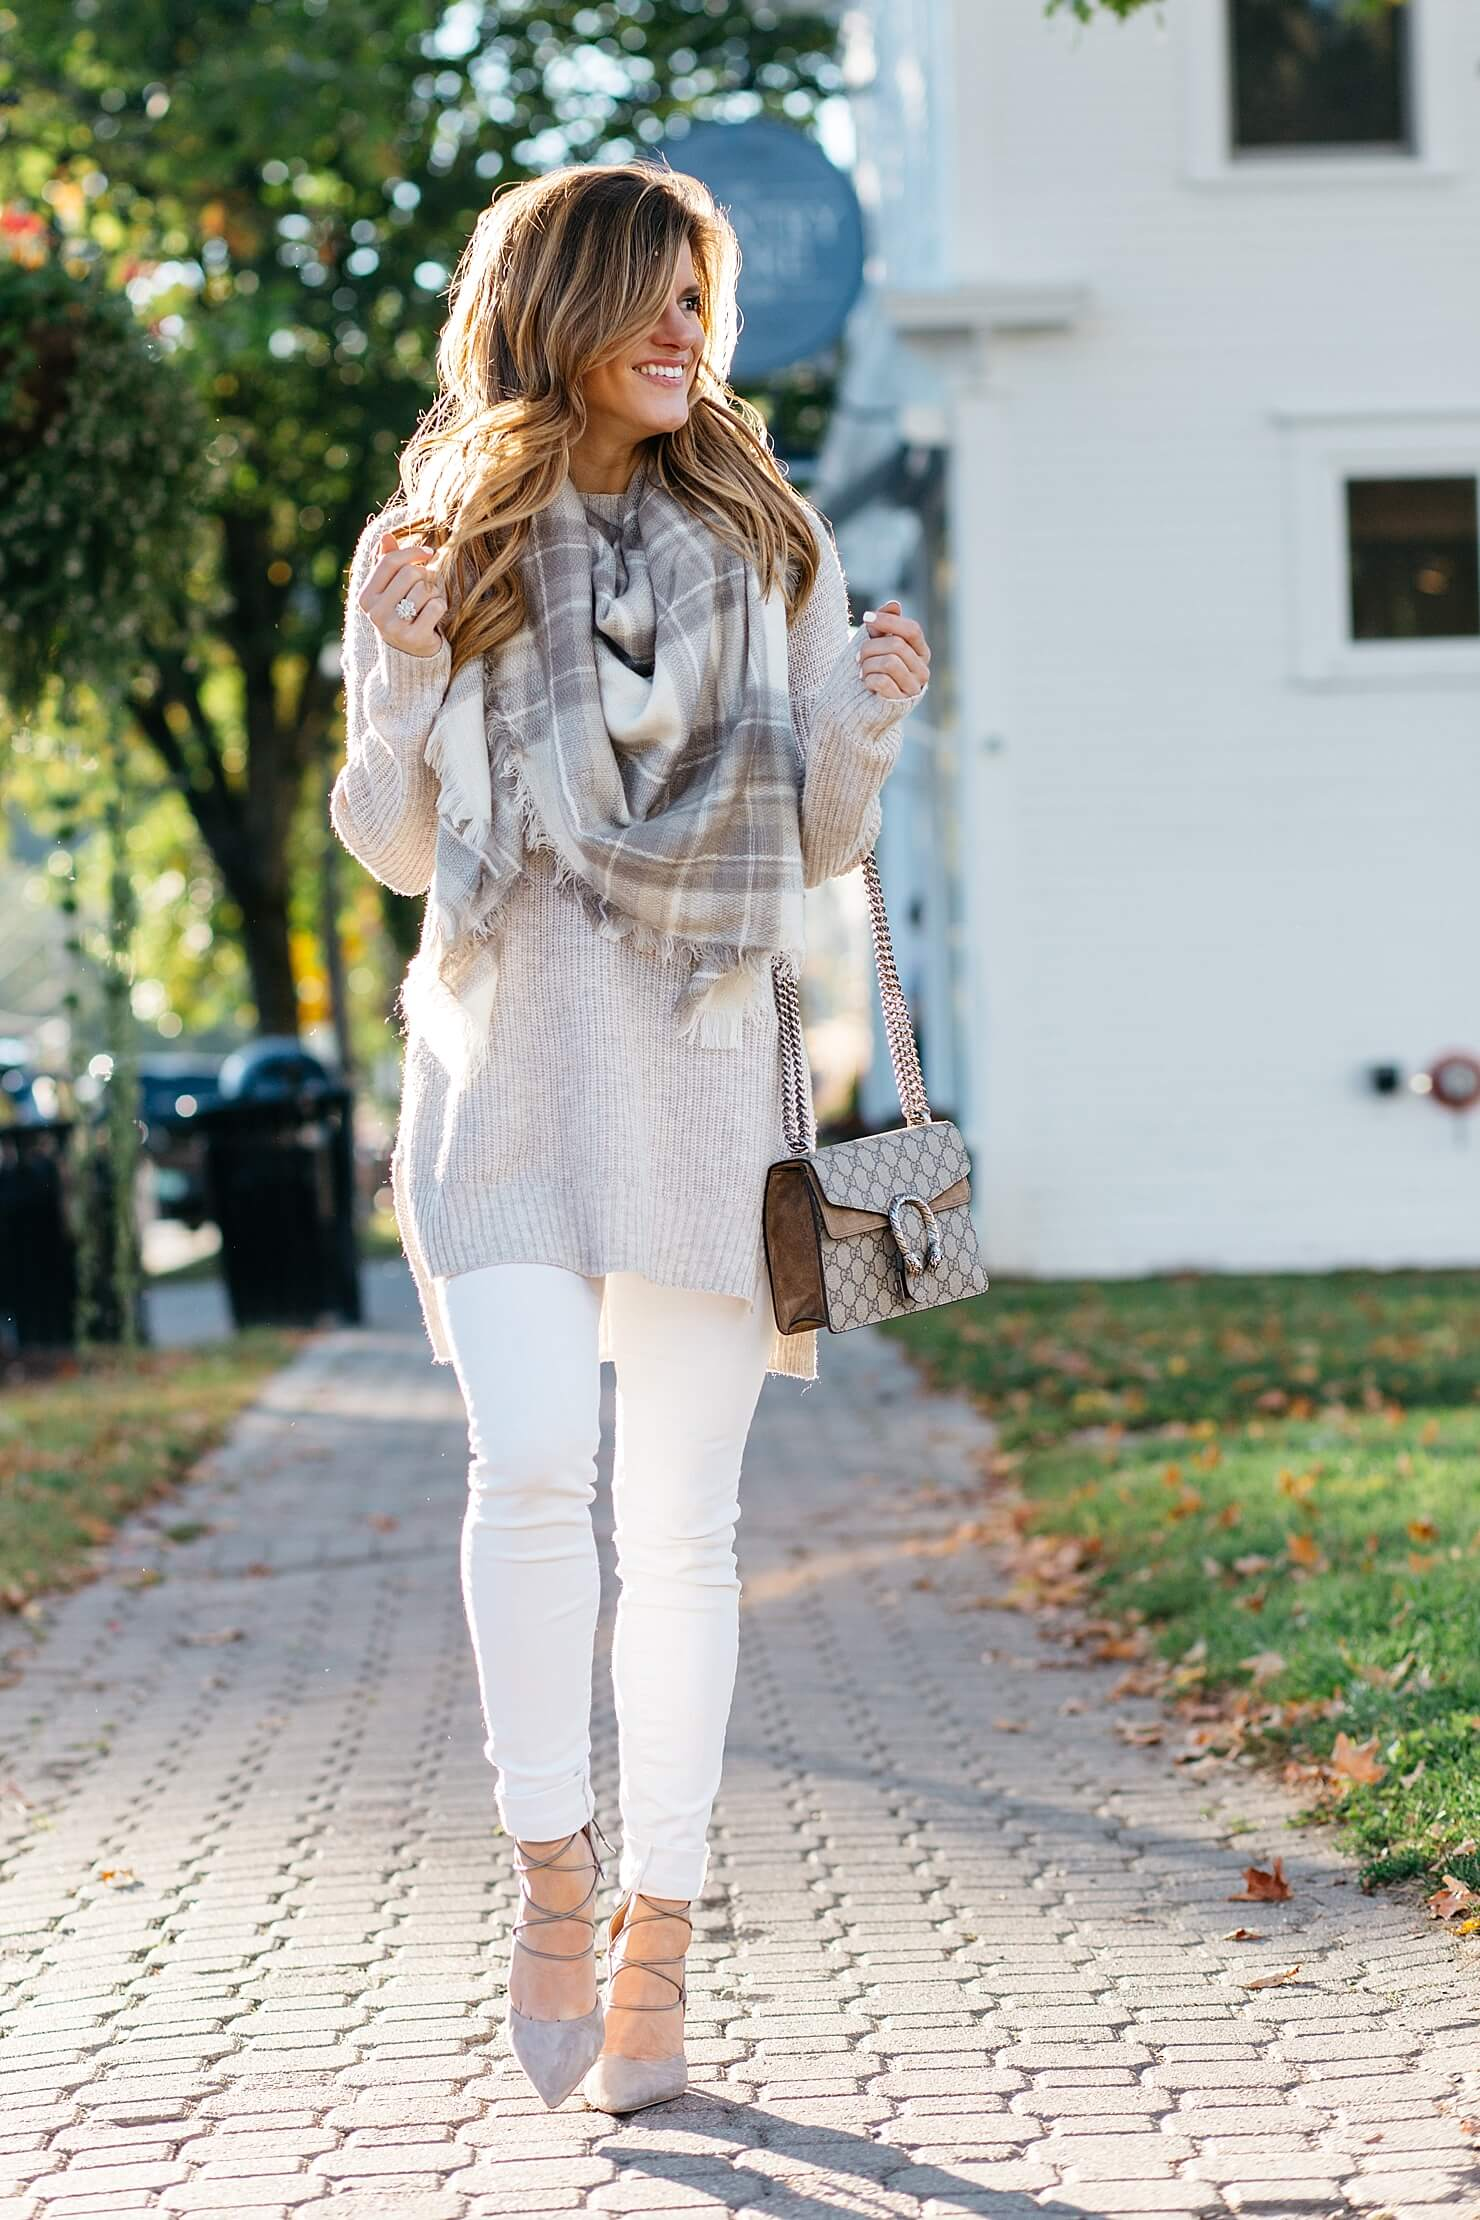 oatmeal neutral tunic sweater, sam edelman lace up heels, gucci crossbody, plaid scarf, neutral fall white jeans outfit